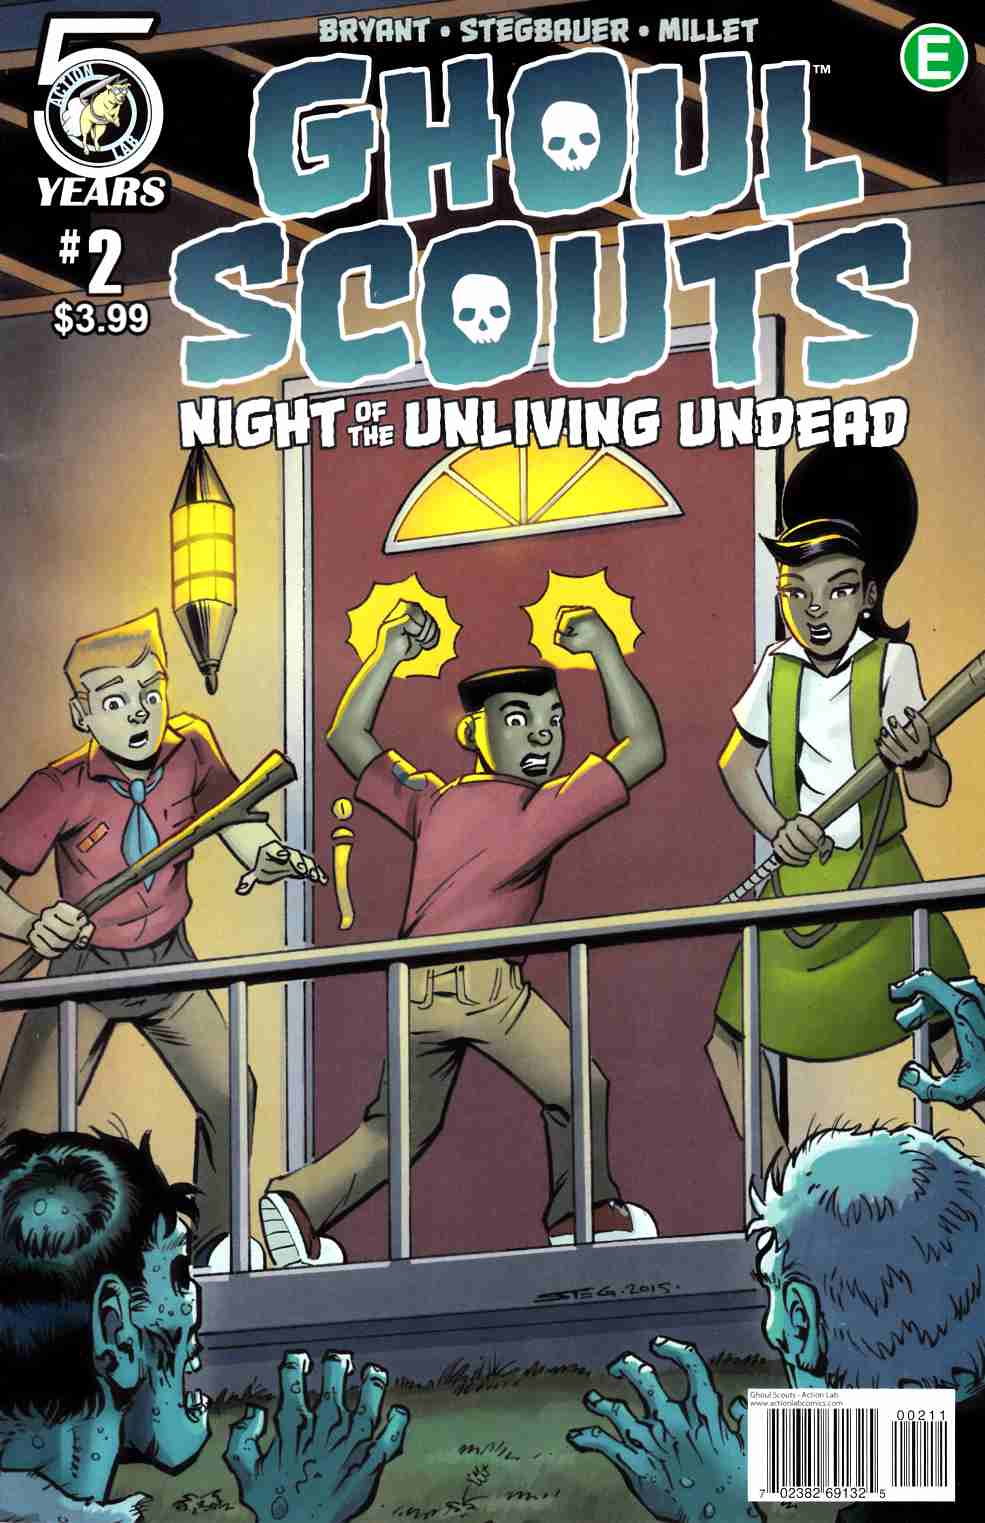 Ghoul Scouts Night of the Unliving Undead #2 Cover A [Action Lab Comic] THUMBNAIL